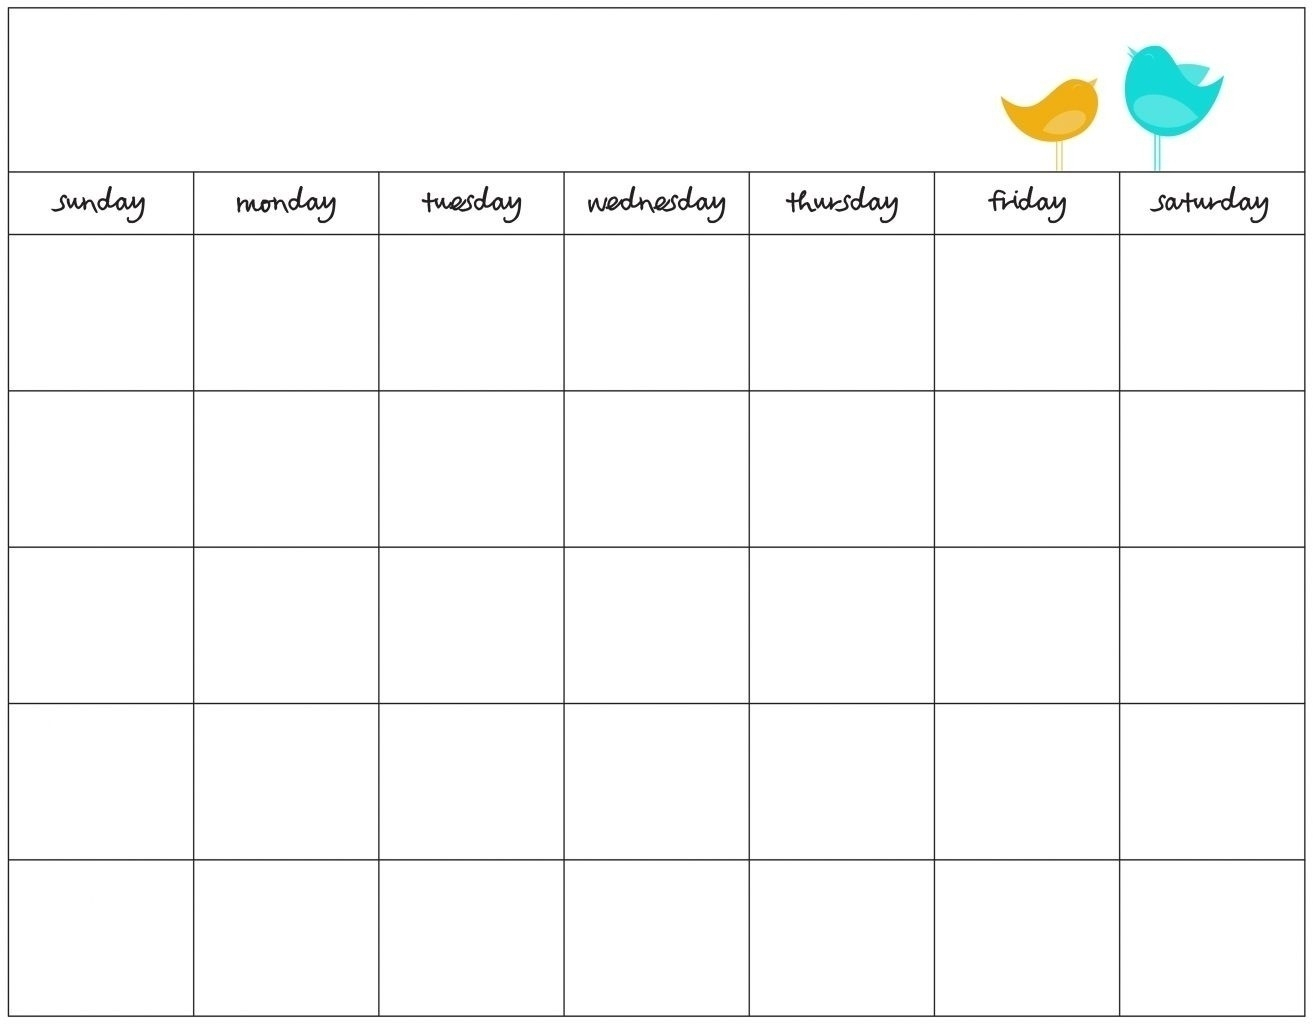 Blank Days Of The Week Calendar | Example Calendar Printable for Printable Week Calendar